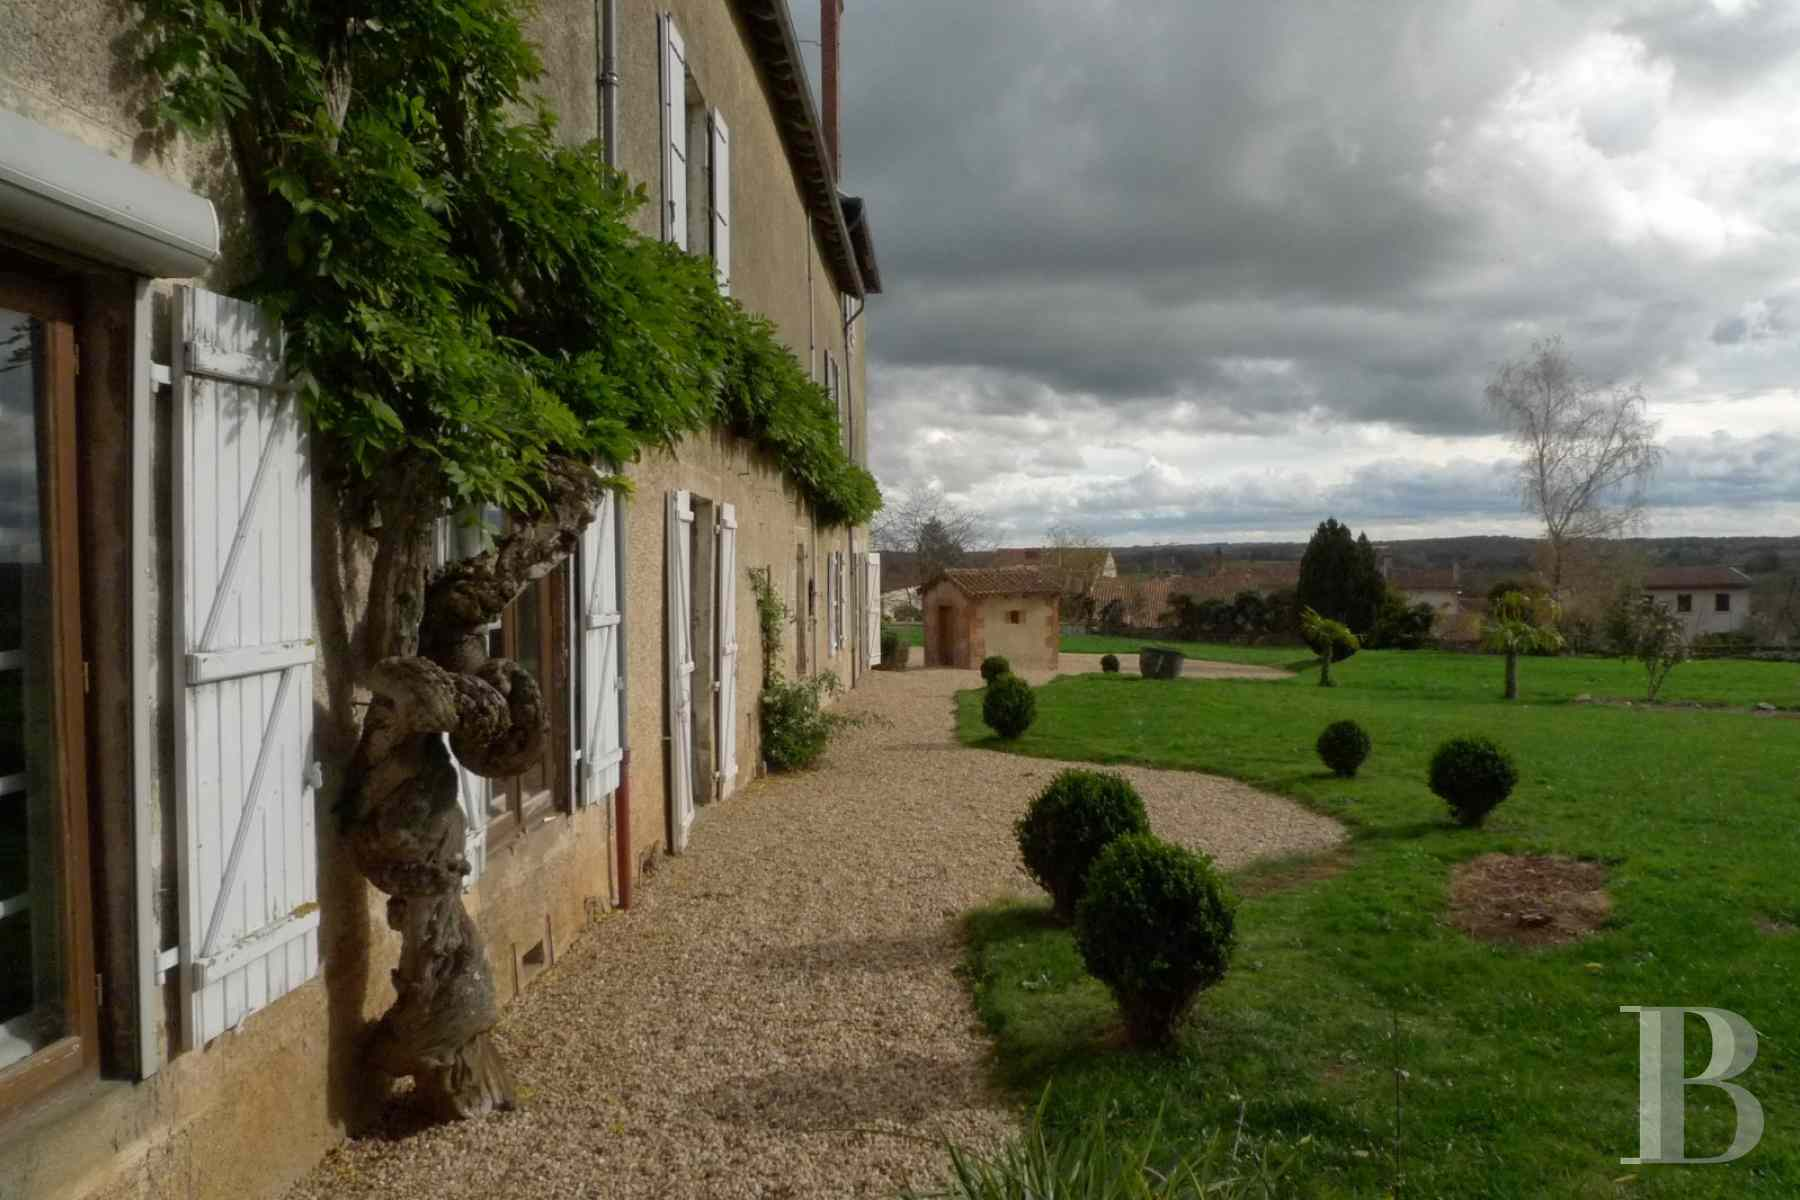 France mansions for sale poitou charentes dwelling 17th - 3 zoom